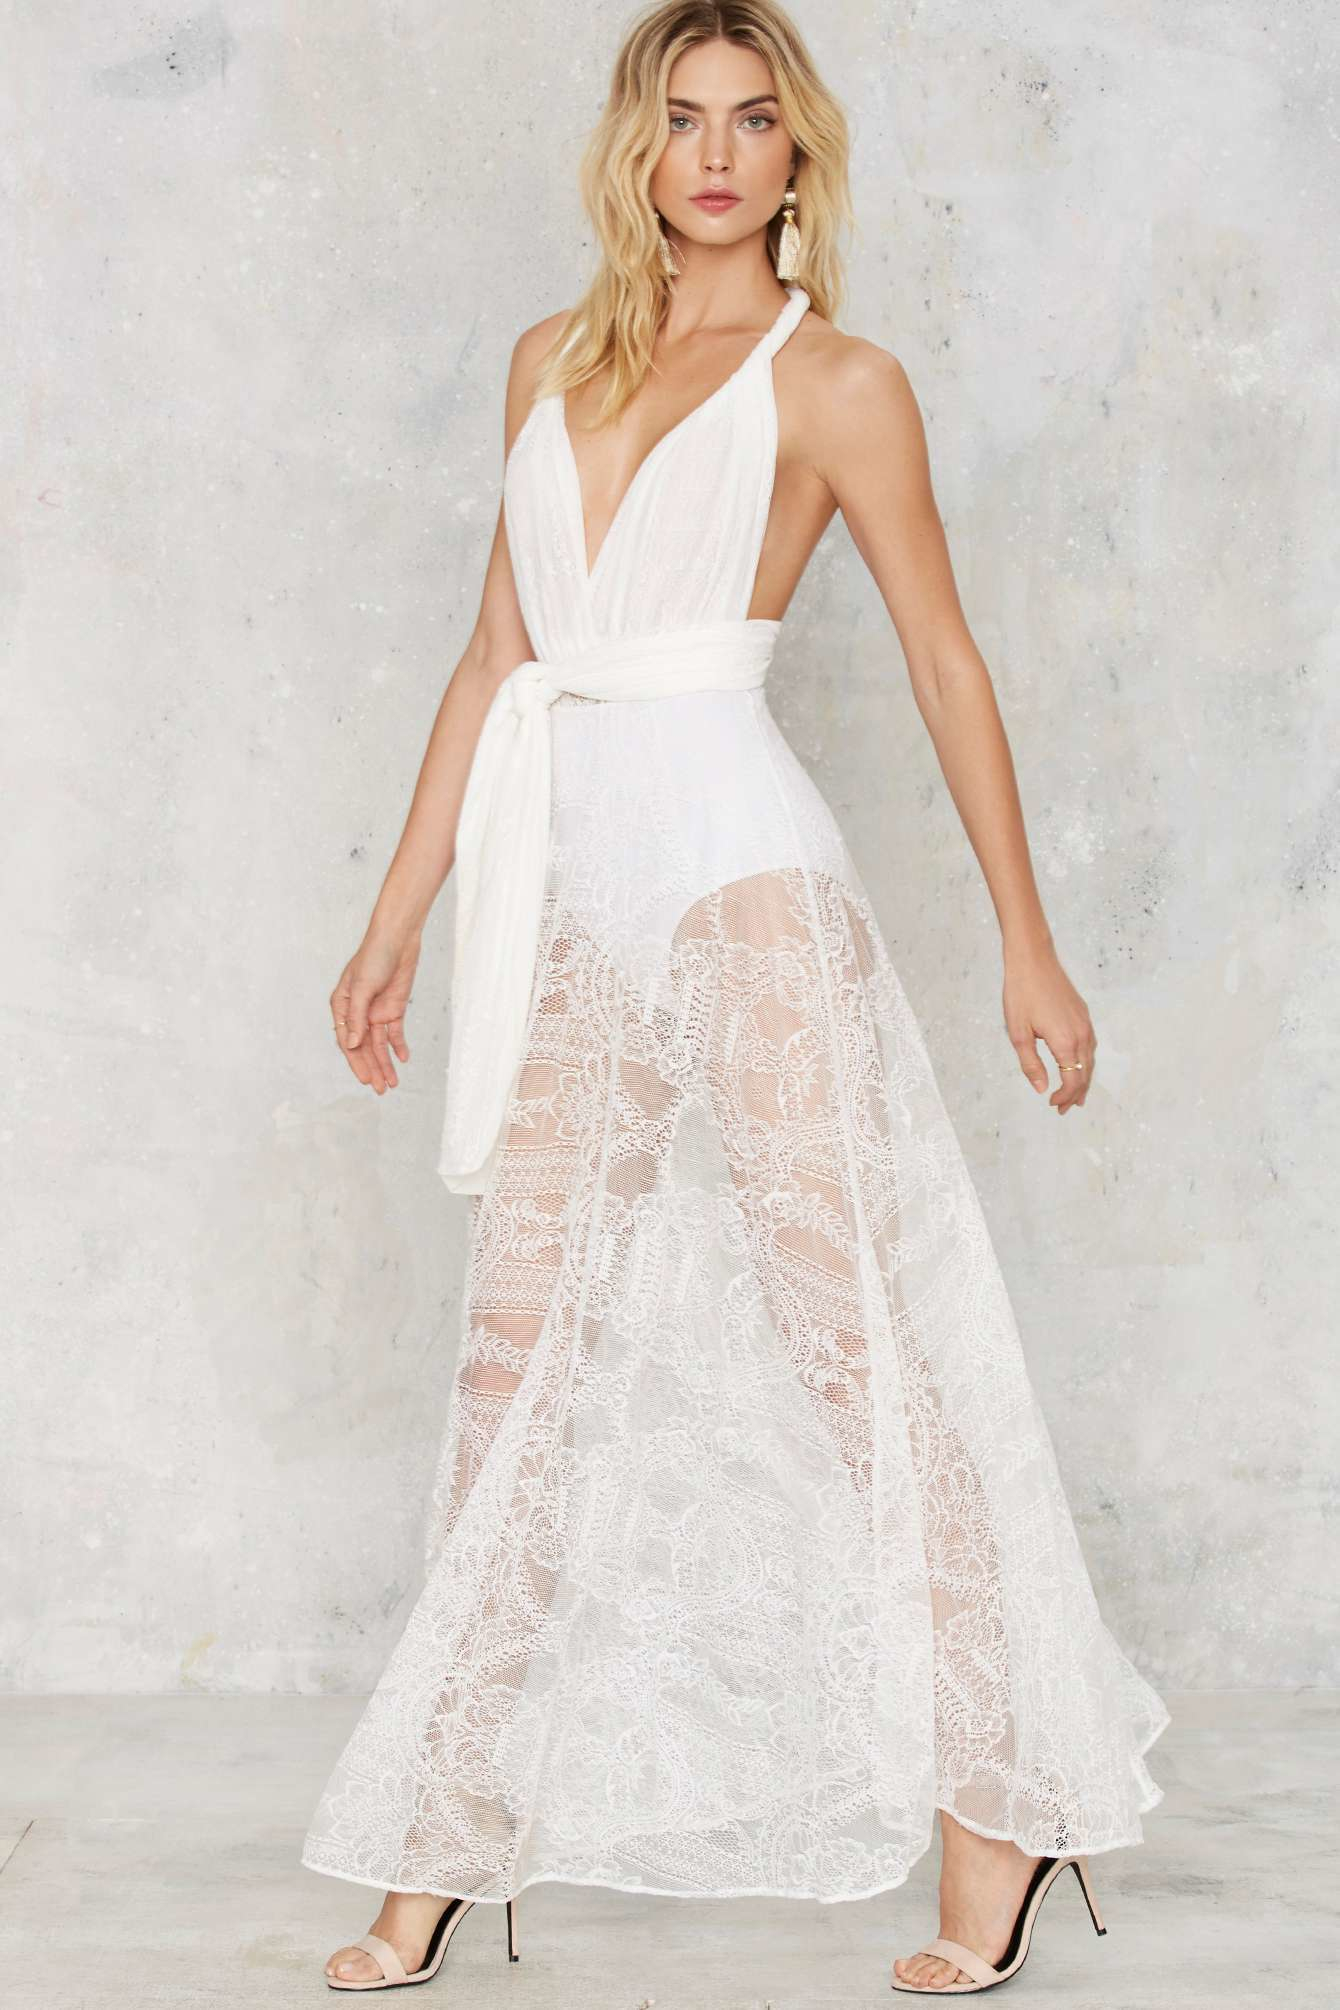 Gallery Women S White Lace Dresses